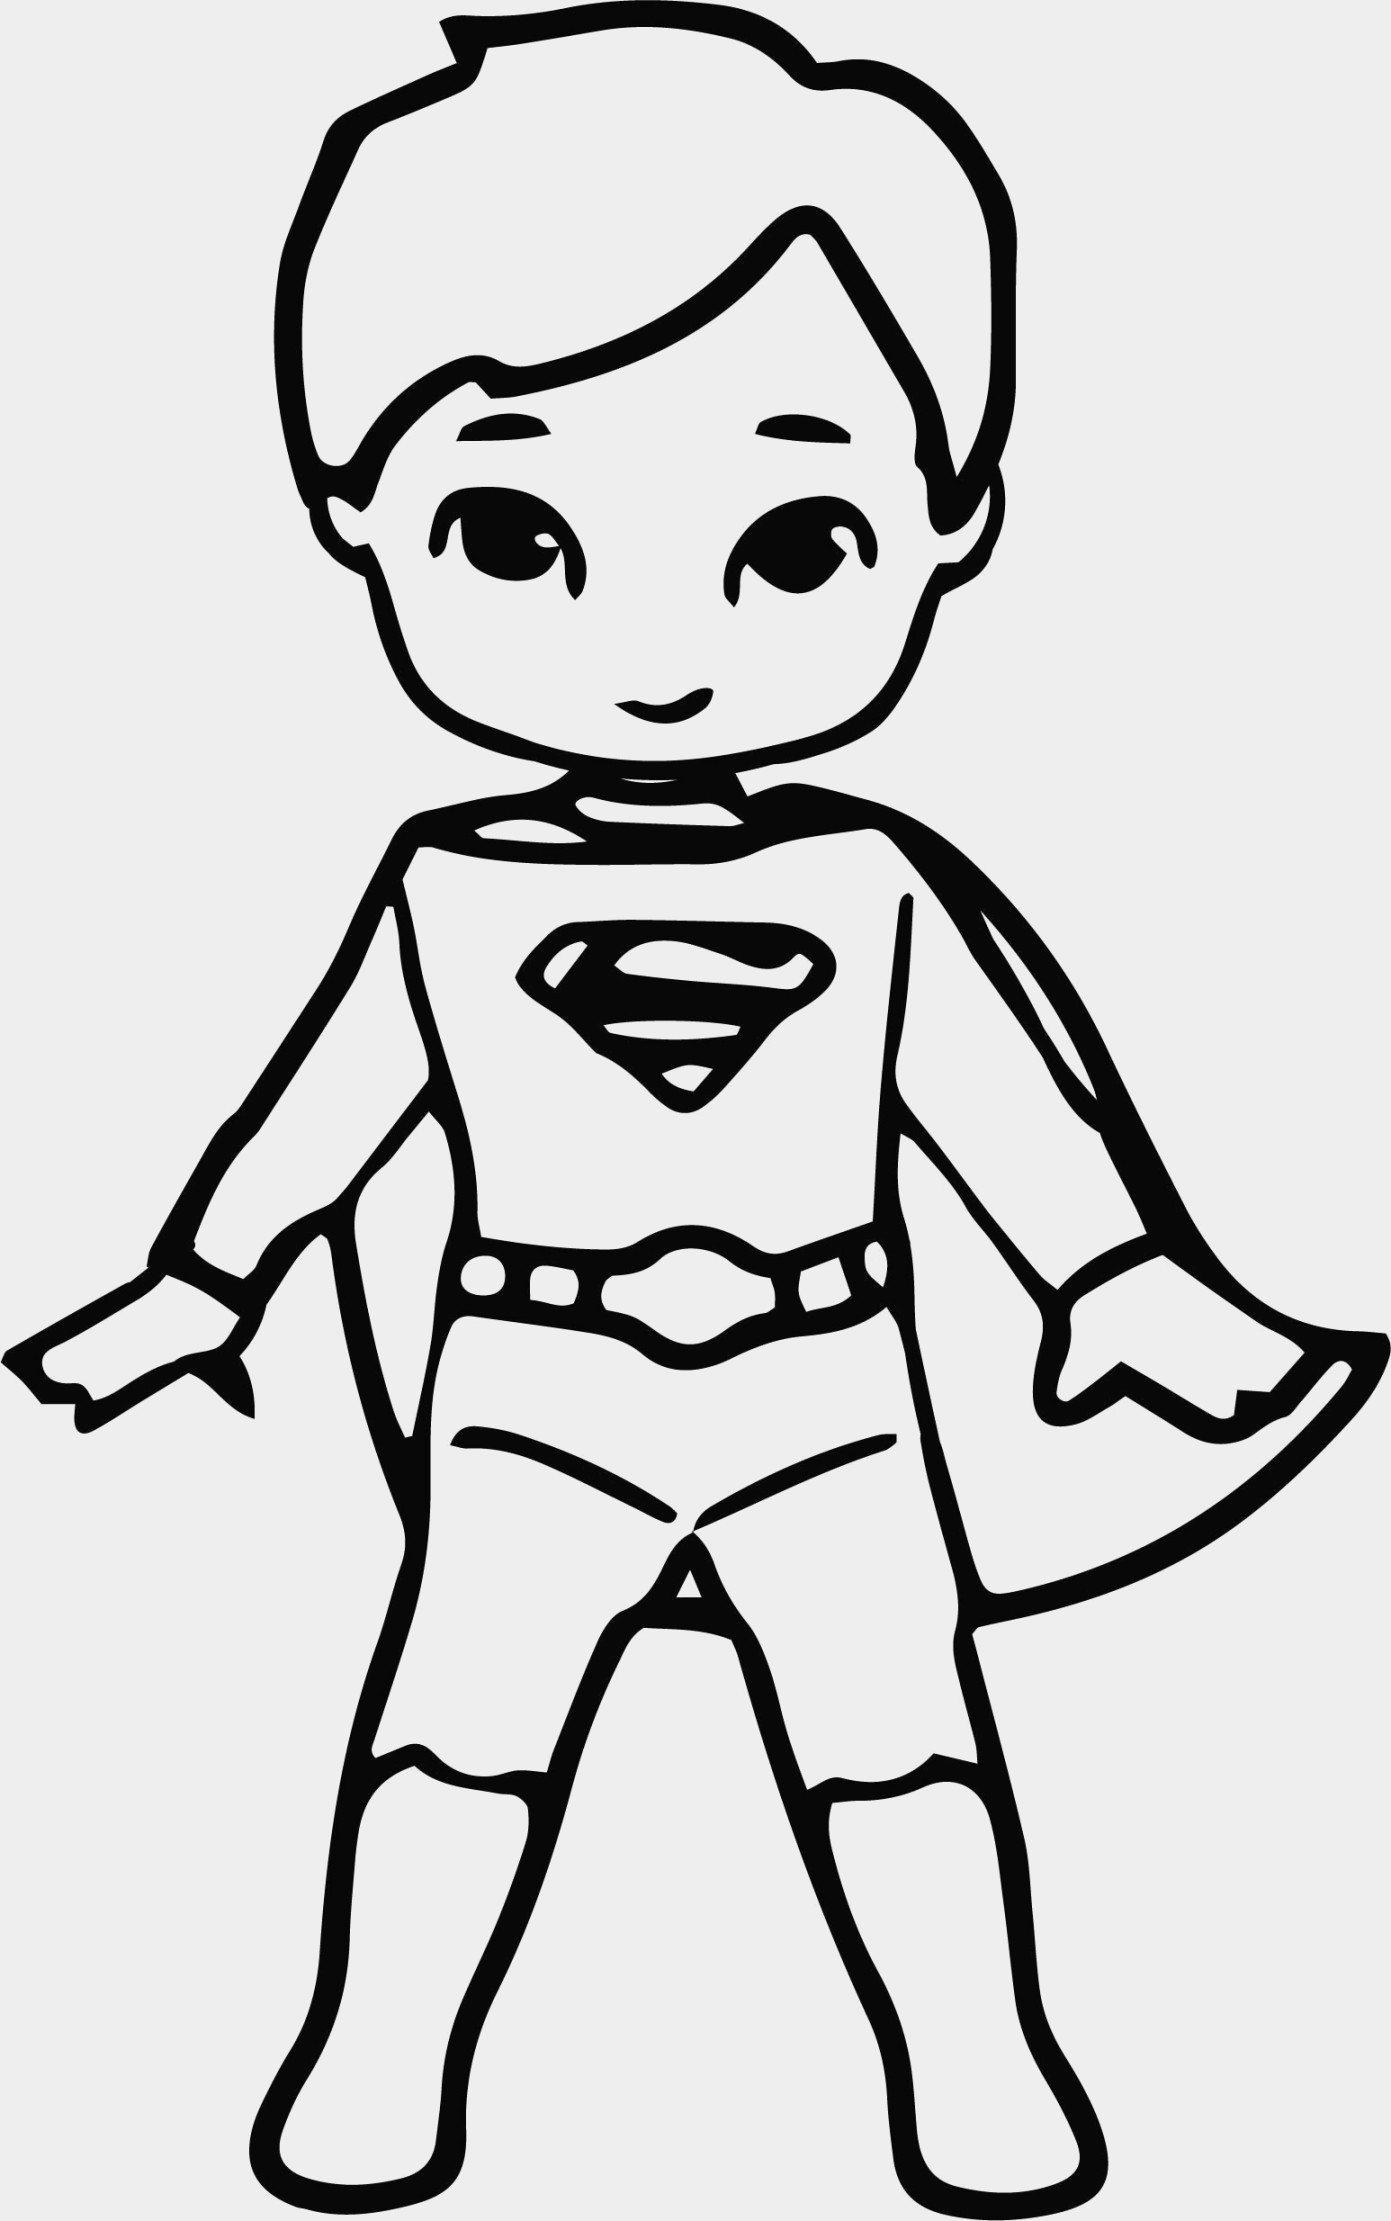 superman cartoon coloring pages waiting cartoon superheroes superman kid coloring page cartoon superman pages coloring